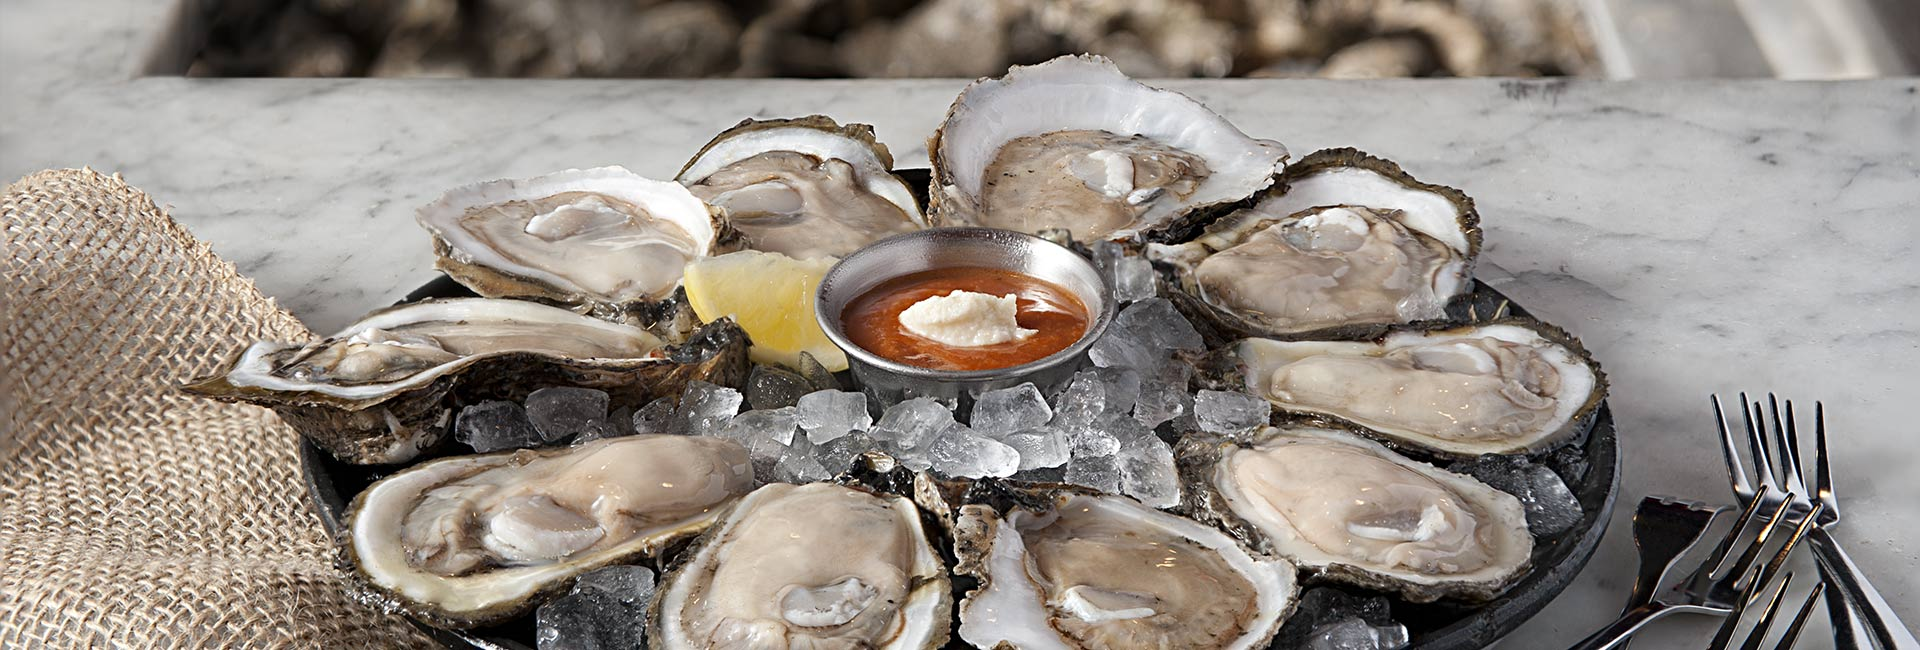 oyster-challenge-acme-oyster-house